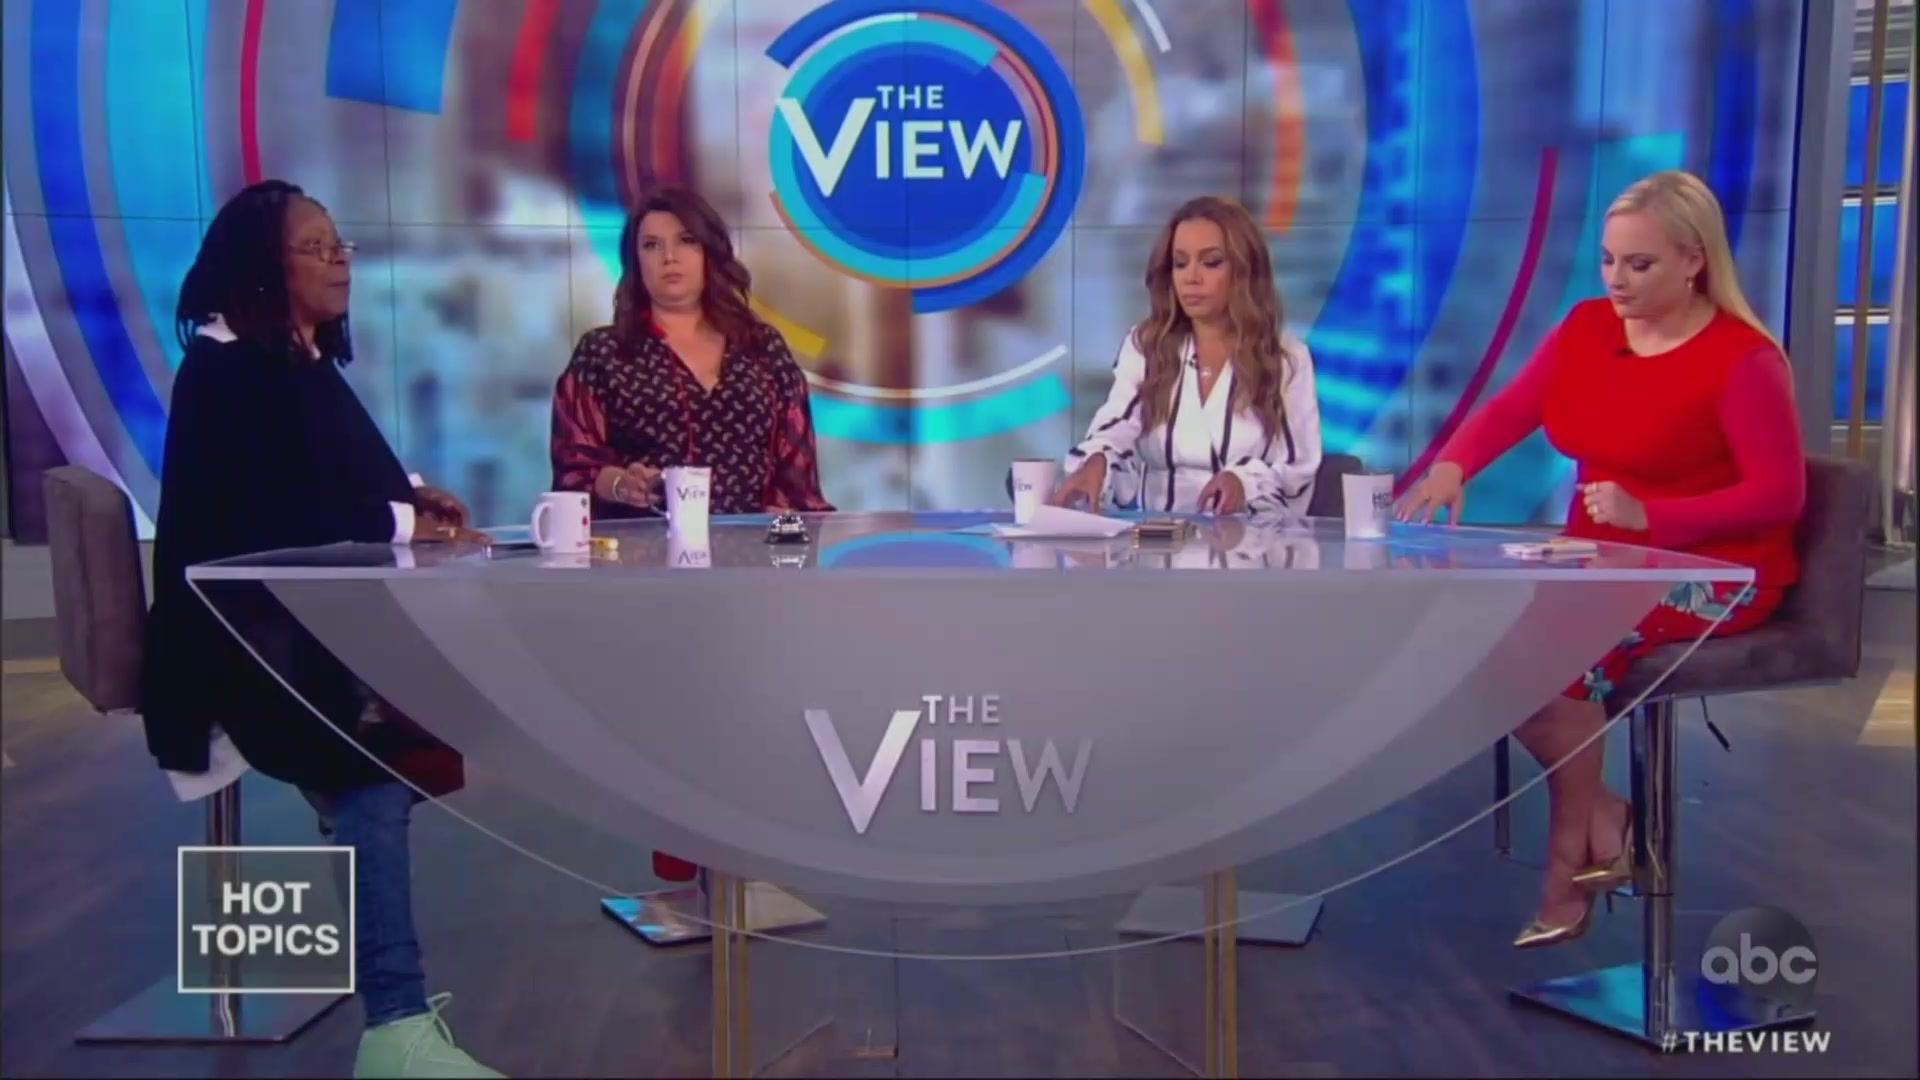 'I Don't Get to Talk?!': Meghan McCain's Latest Outburst Prompts Scolding From Whoopi Goldberg